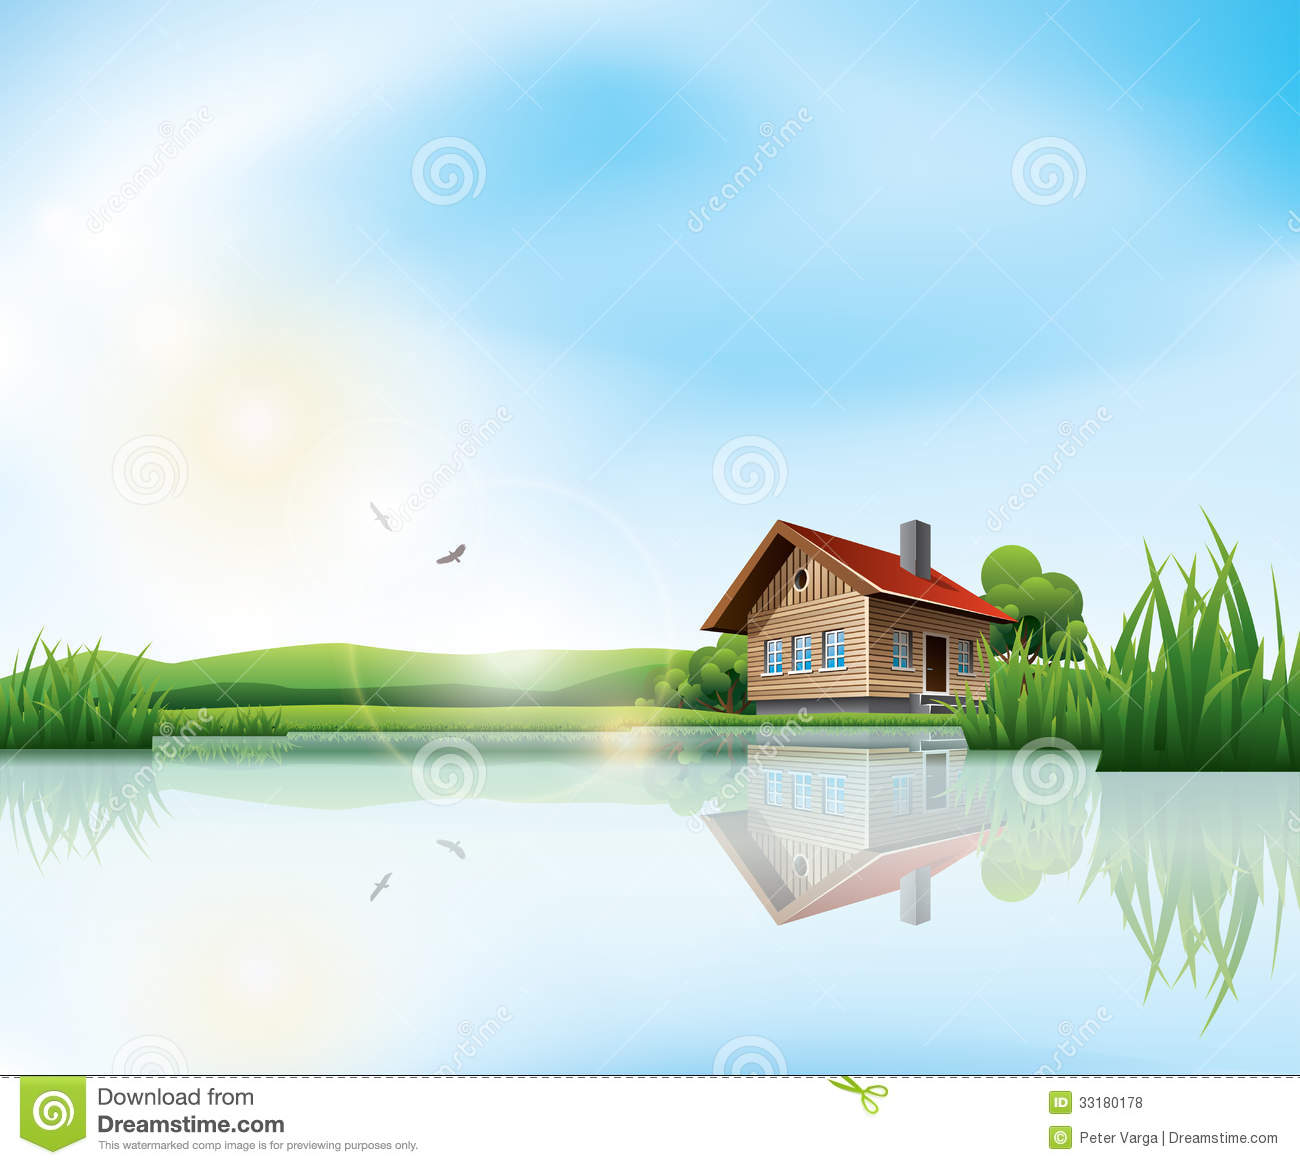 Landscape Illustration Vector Free: House At The Lake Stock Vector. Illustration Of Meadow